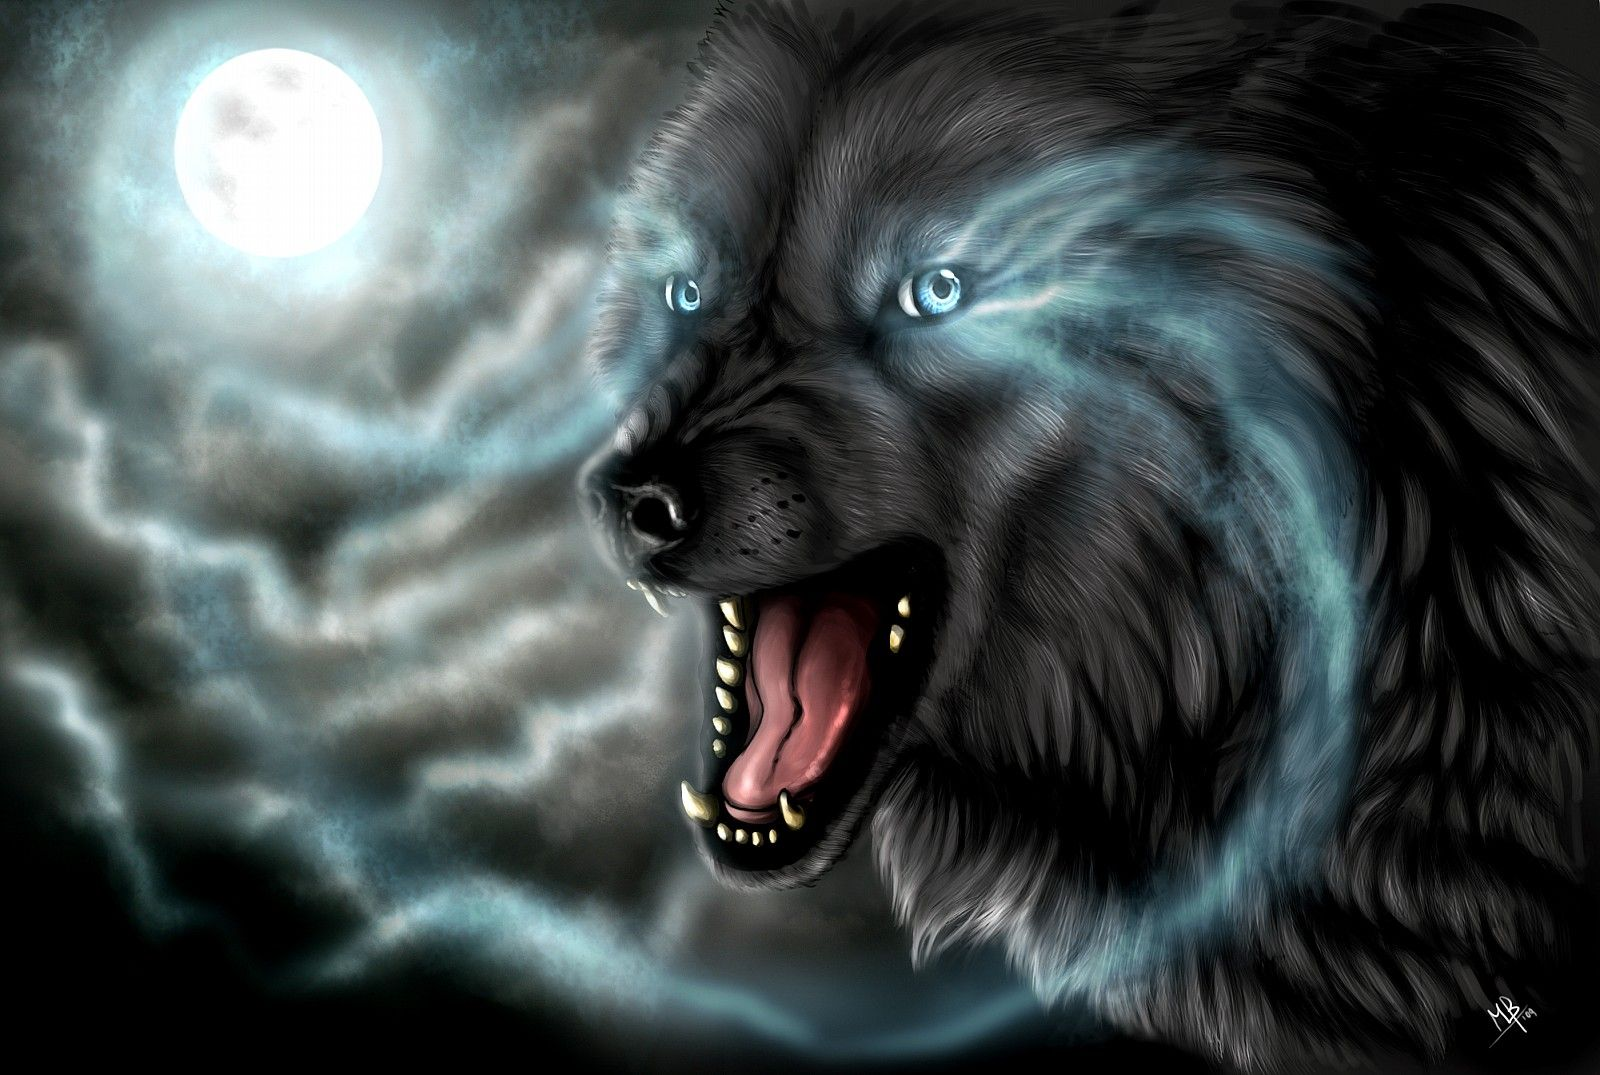 Wolf design fantasy hd images and wallpapers all free to wolf design fantasy hd images and wallpapers all free to download voltagebd Choice Image